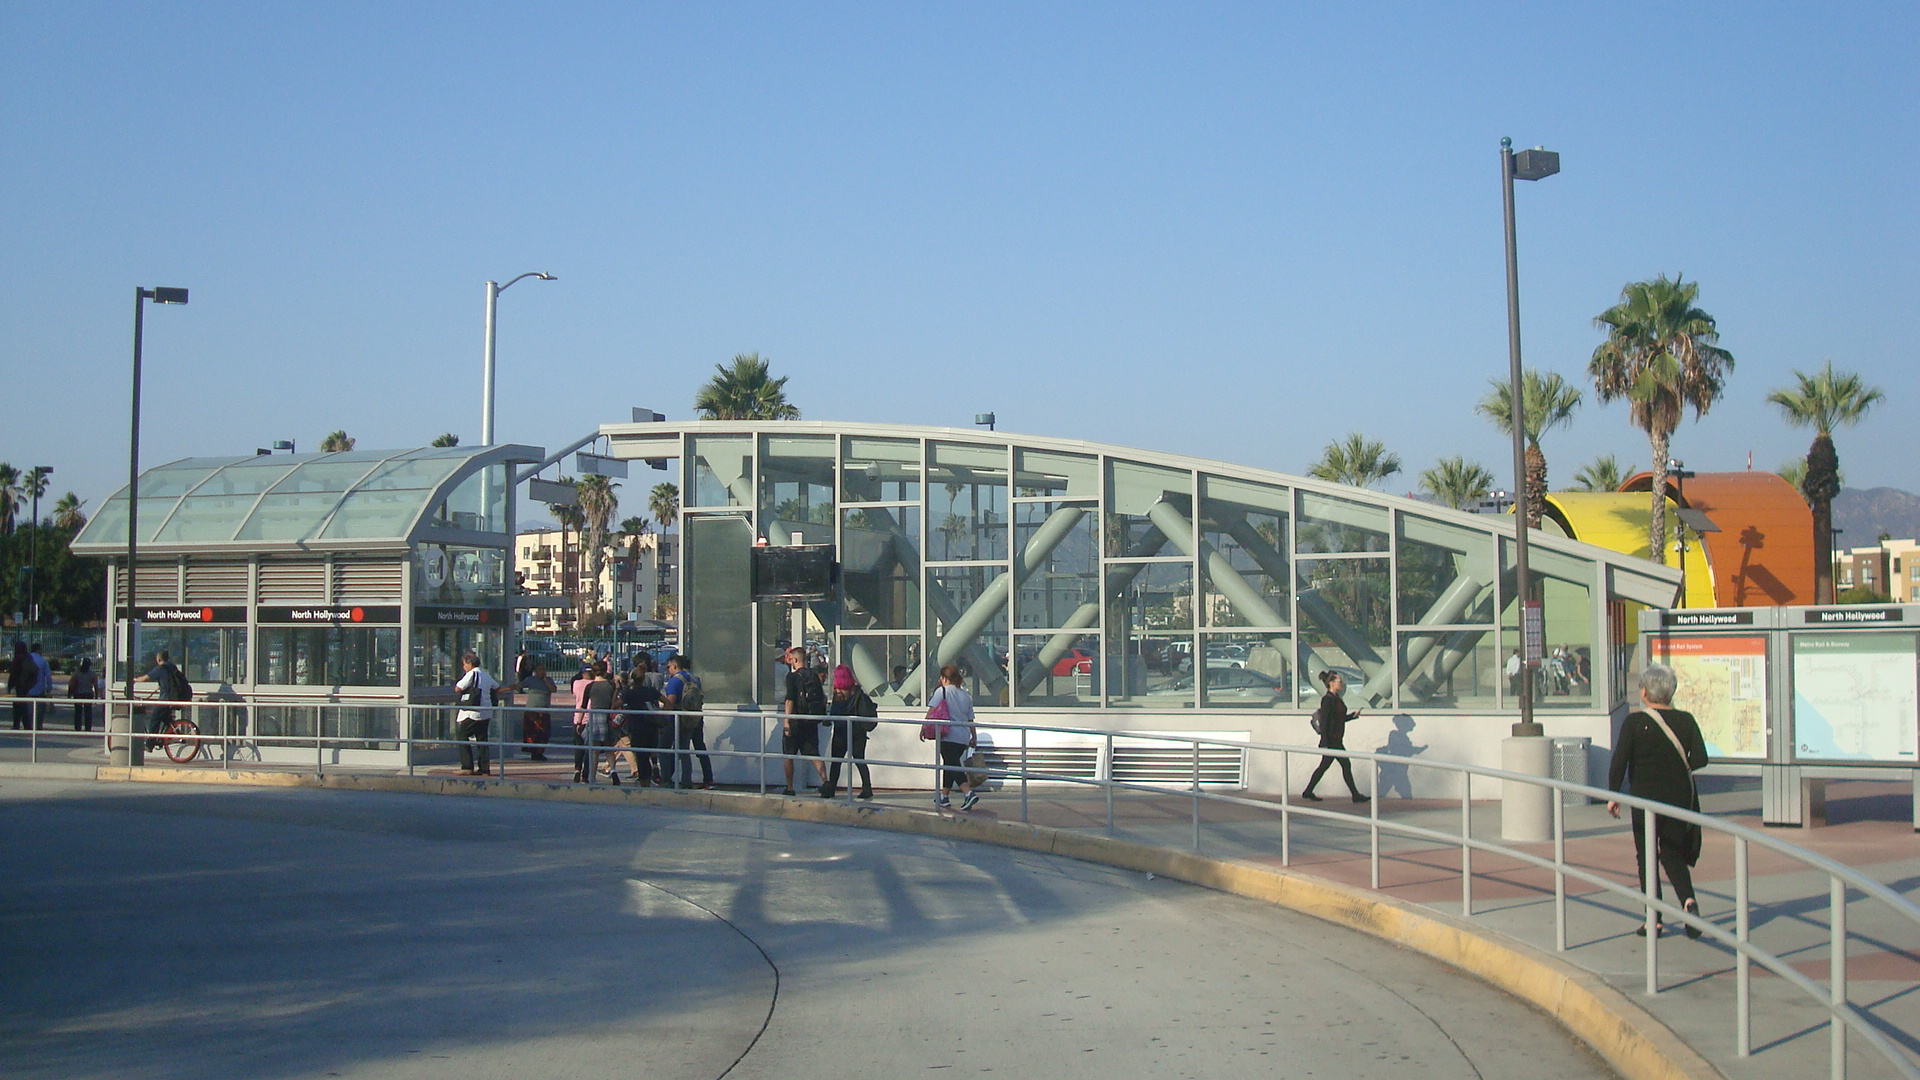 Street level entrance to the North Hollywood Station Underpass.